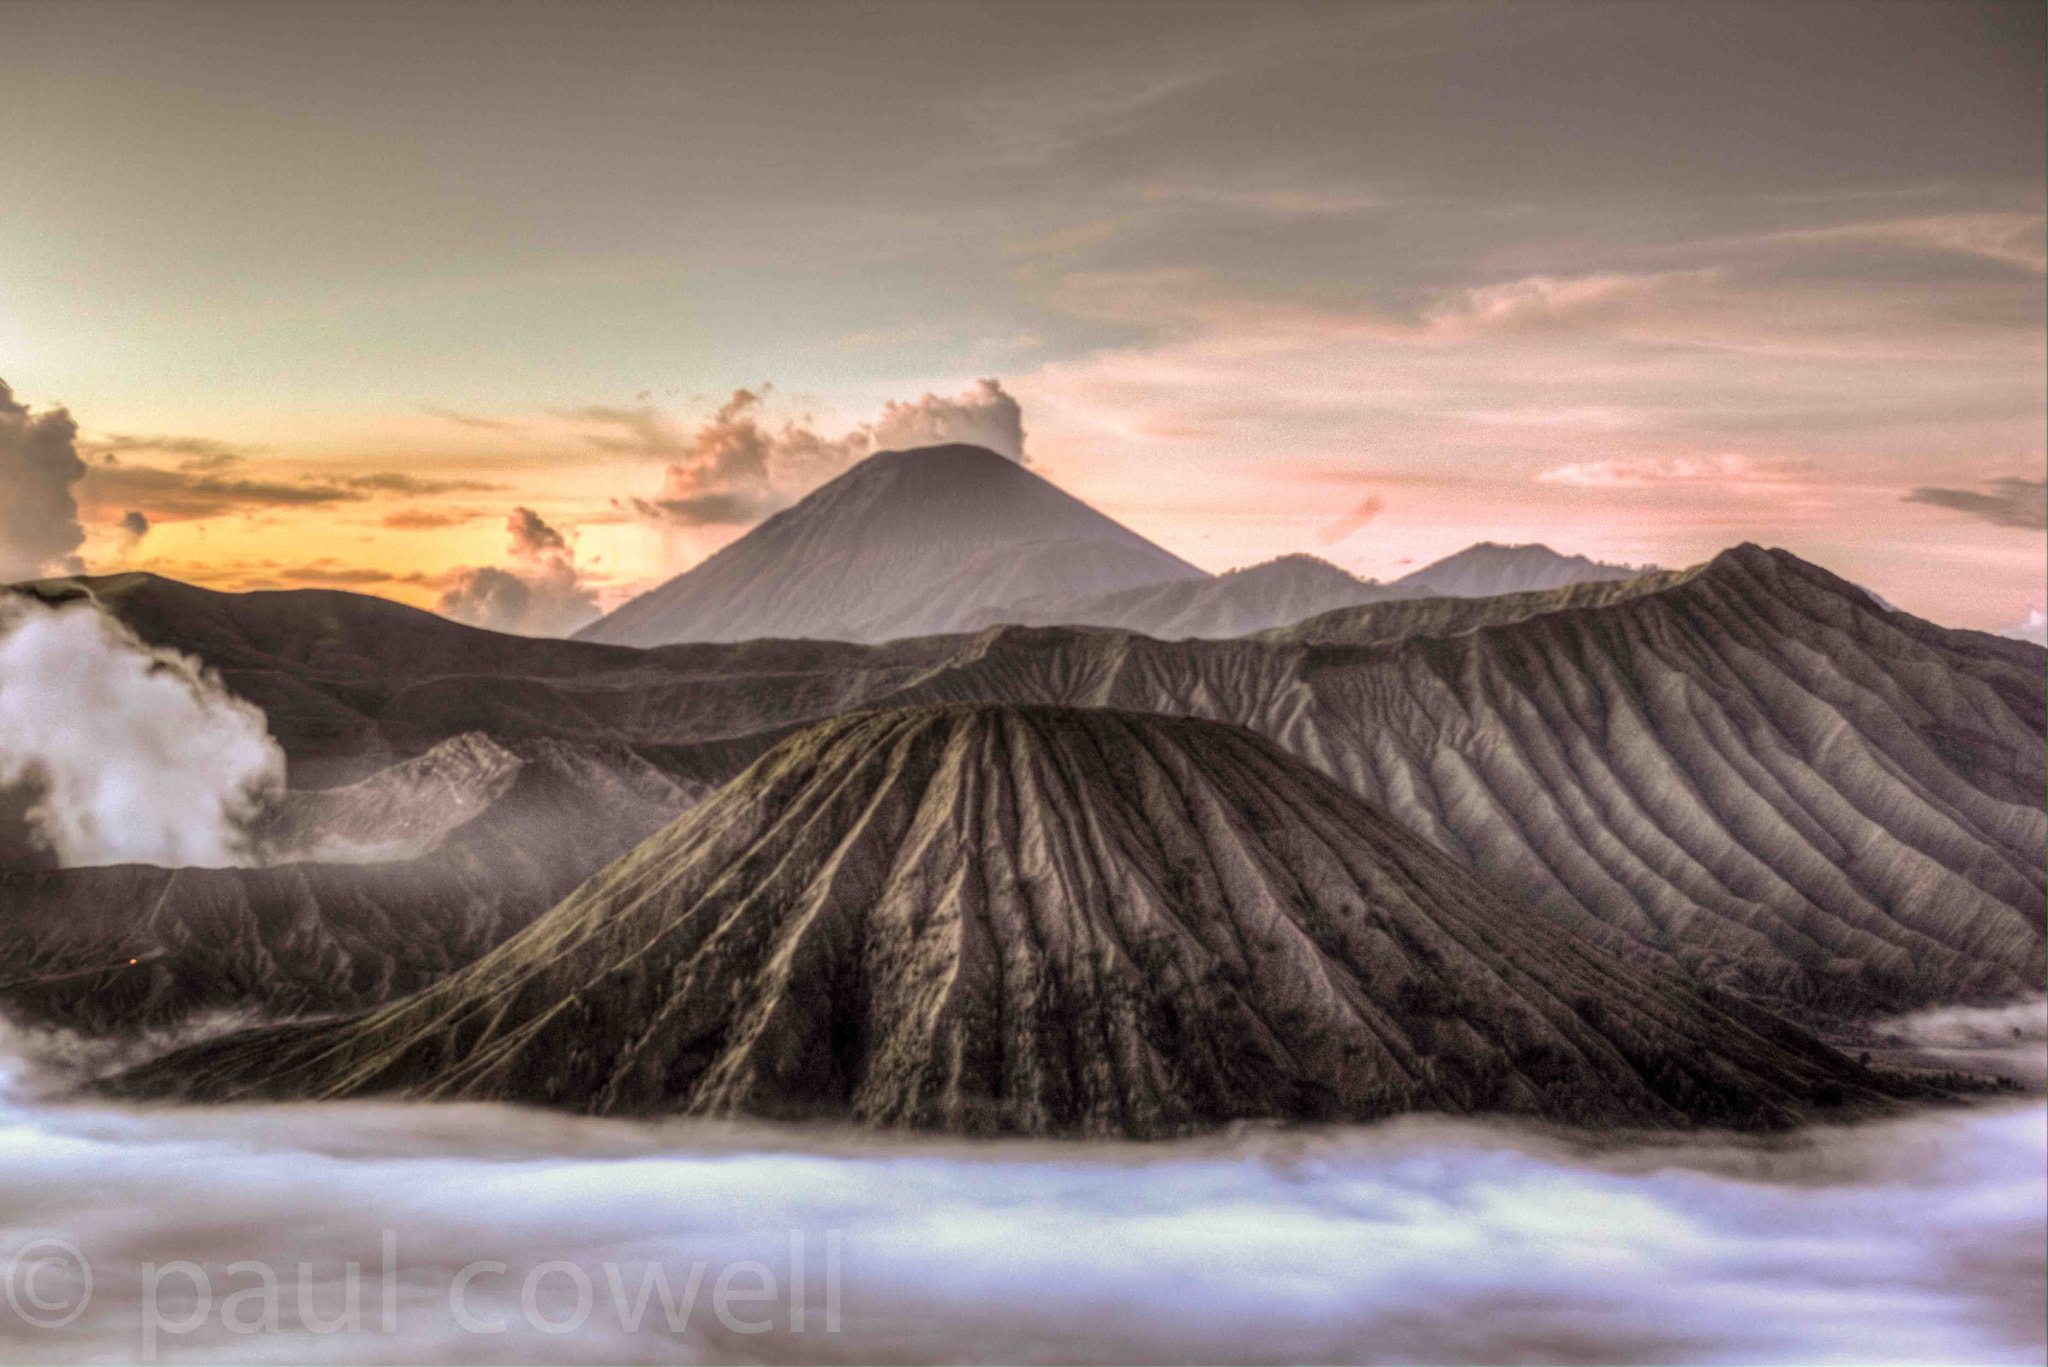 Photograph bromo landscape by Paul Cowell on 500px